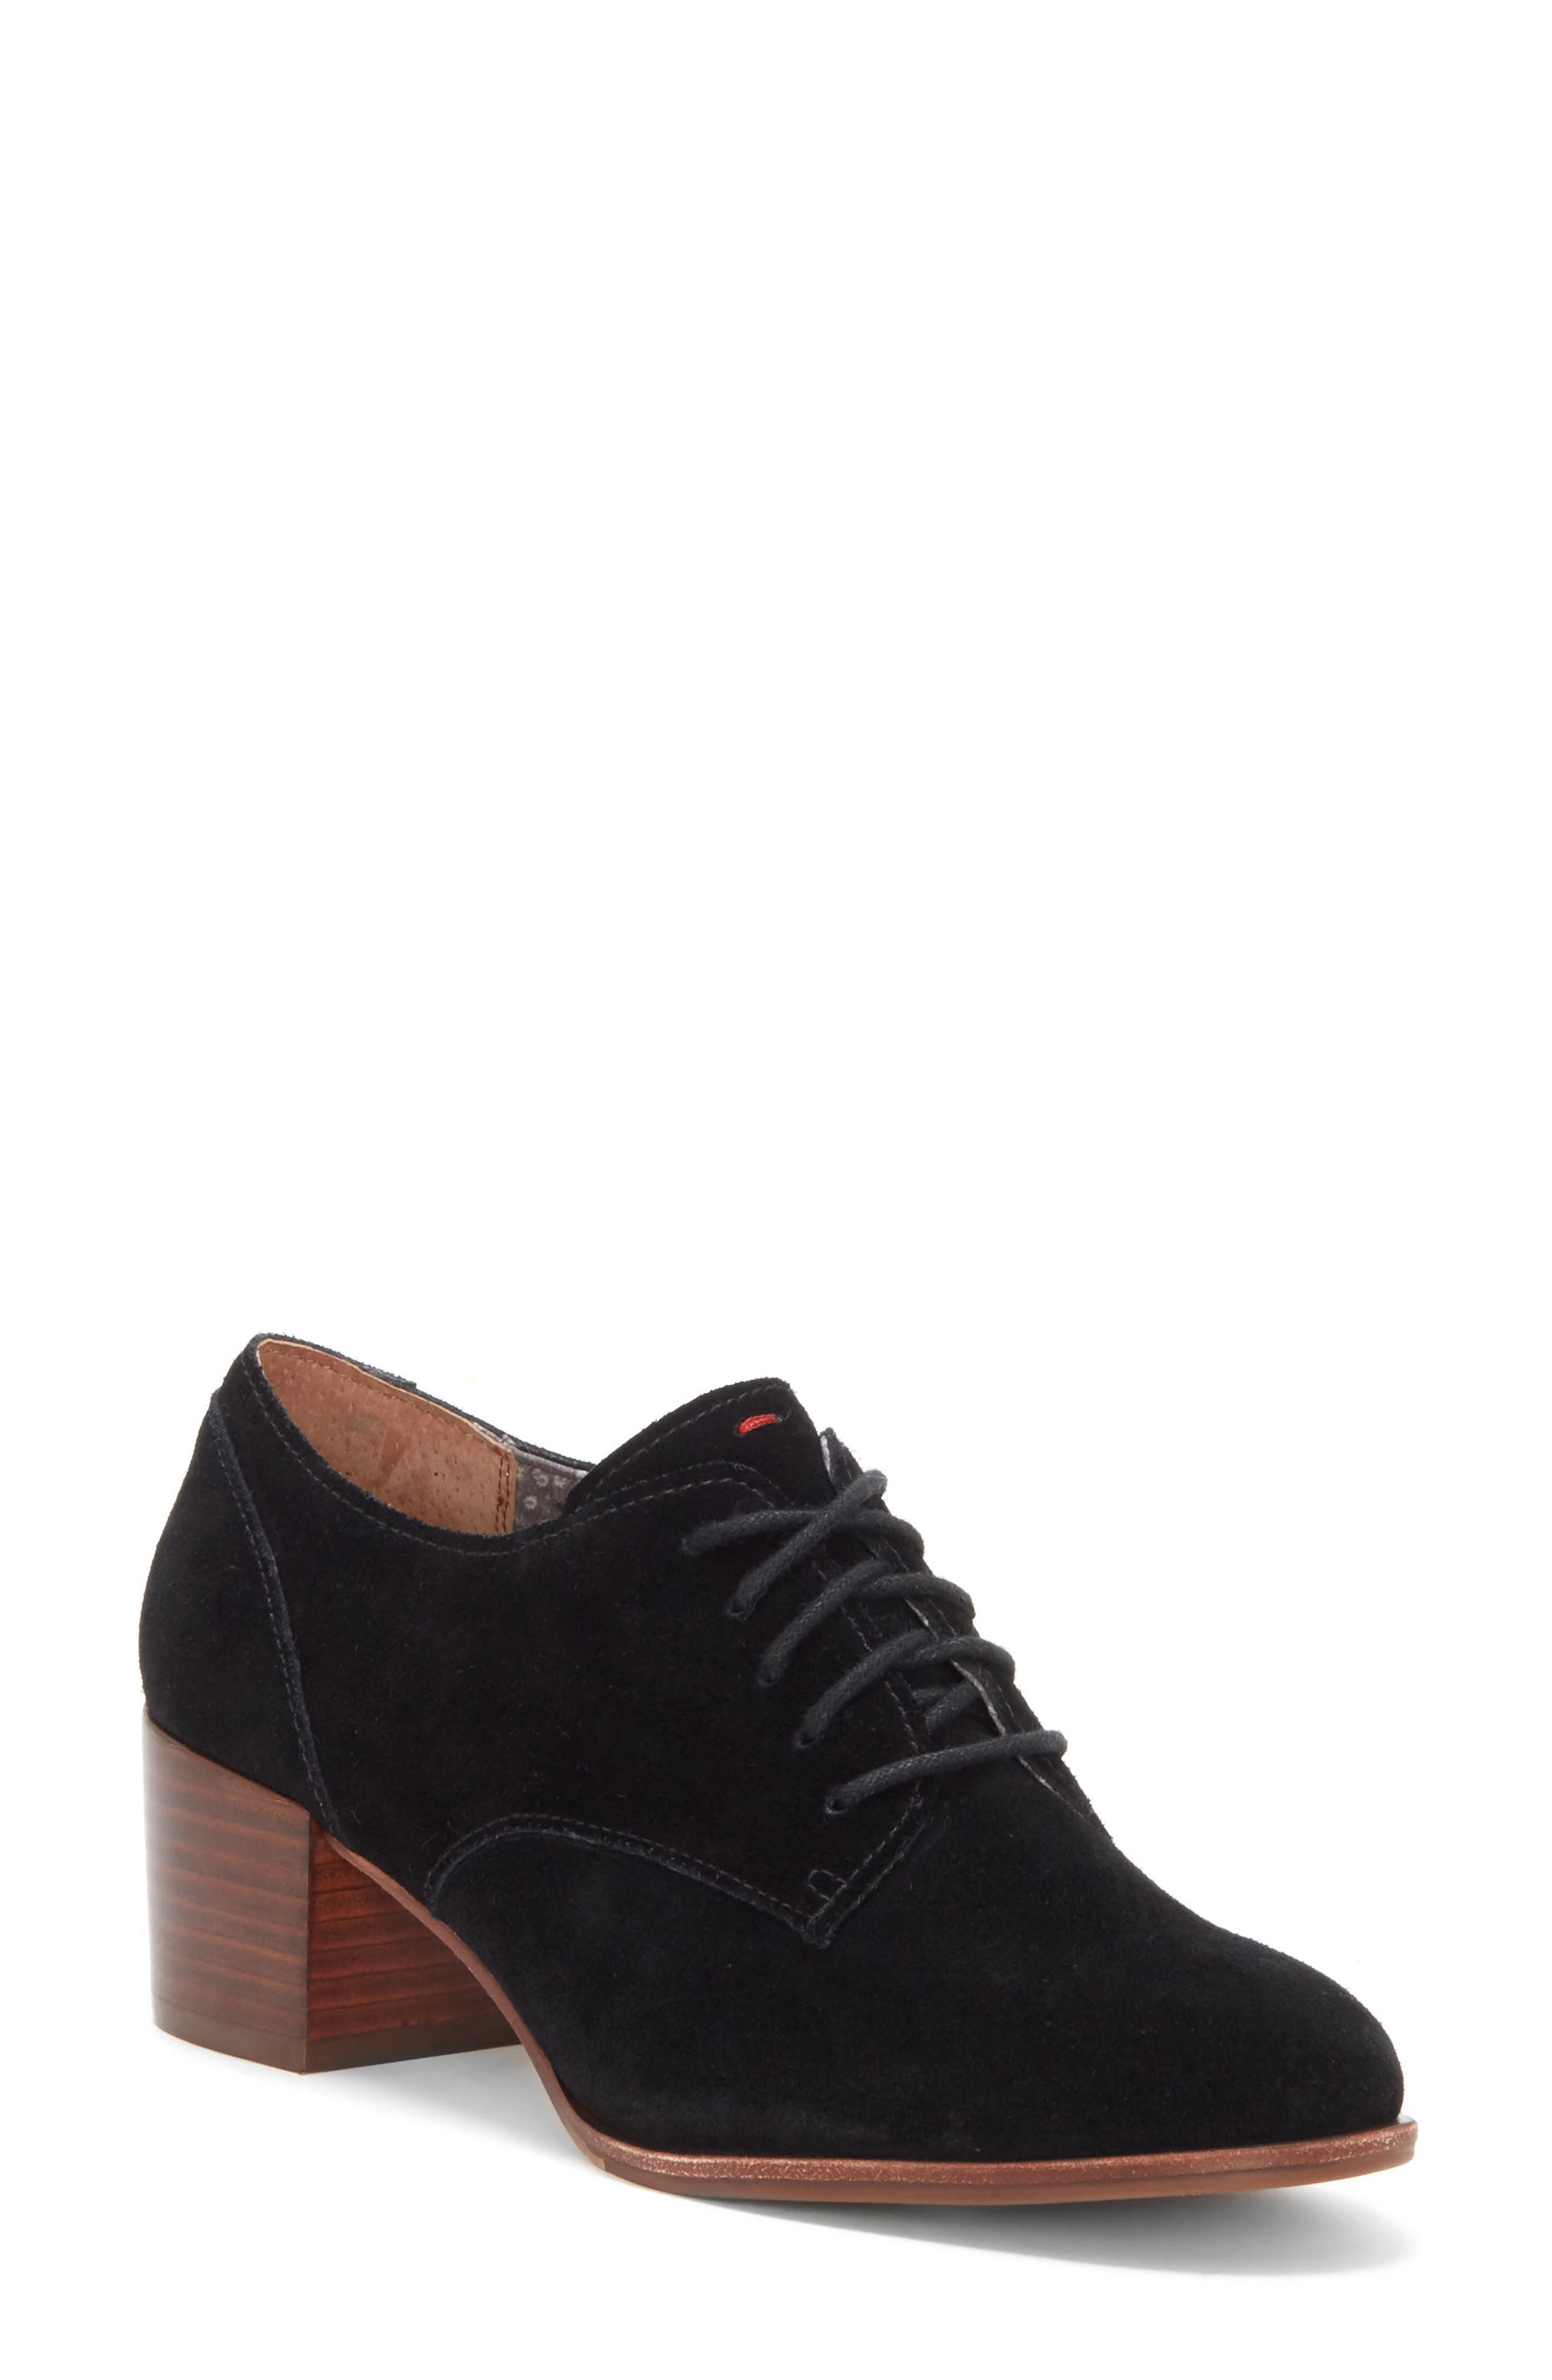 Phoebe Oxford Pump,                             Main thumbnail 1, color,                             001